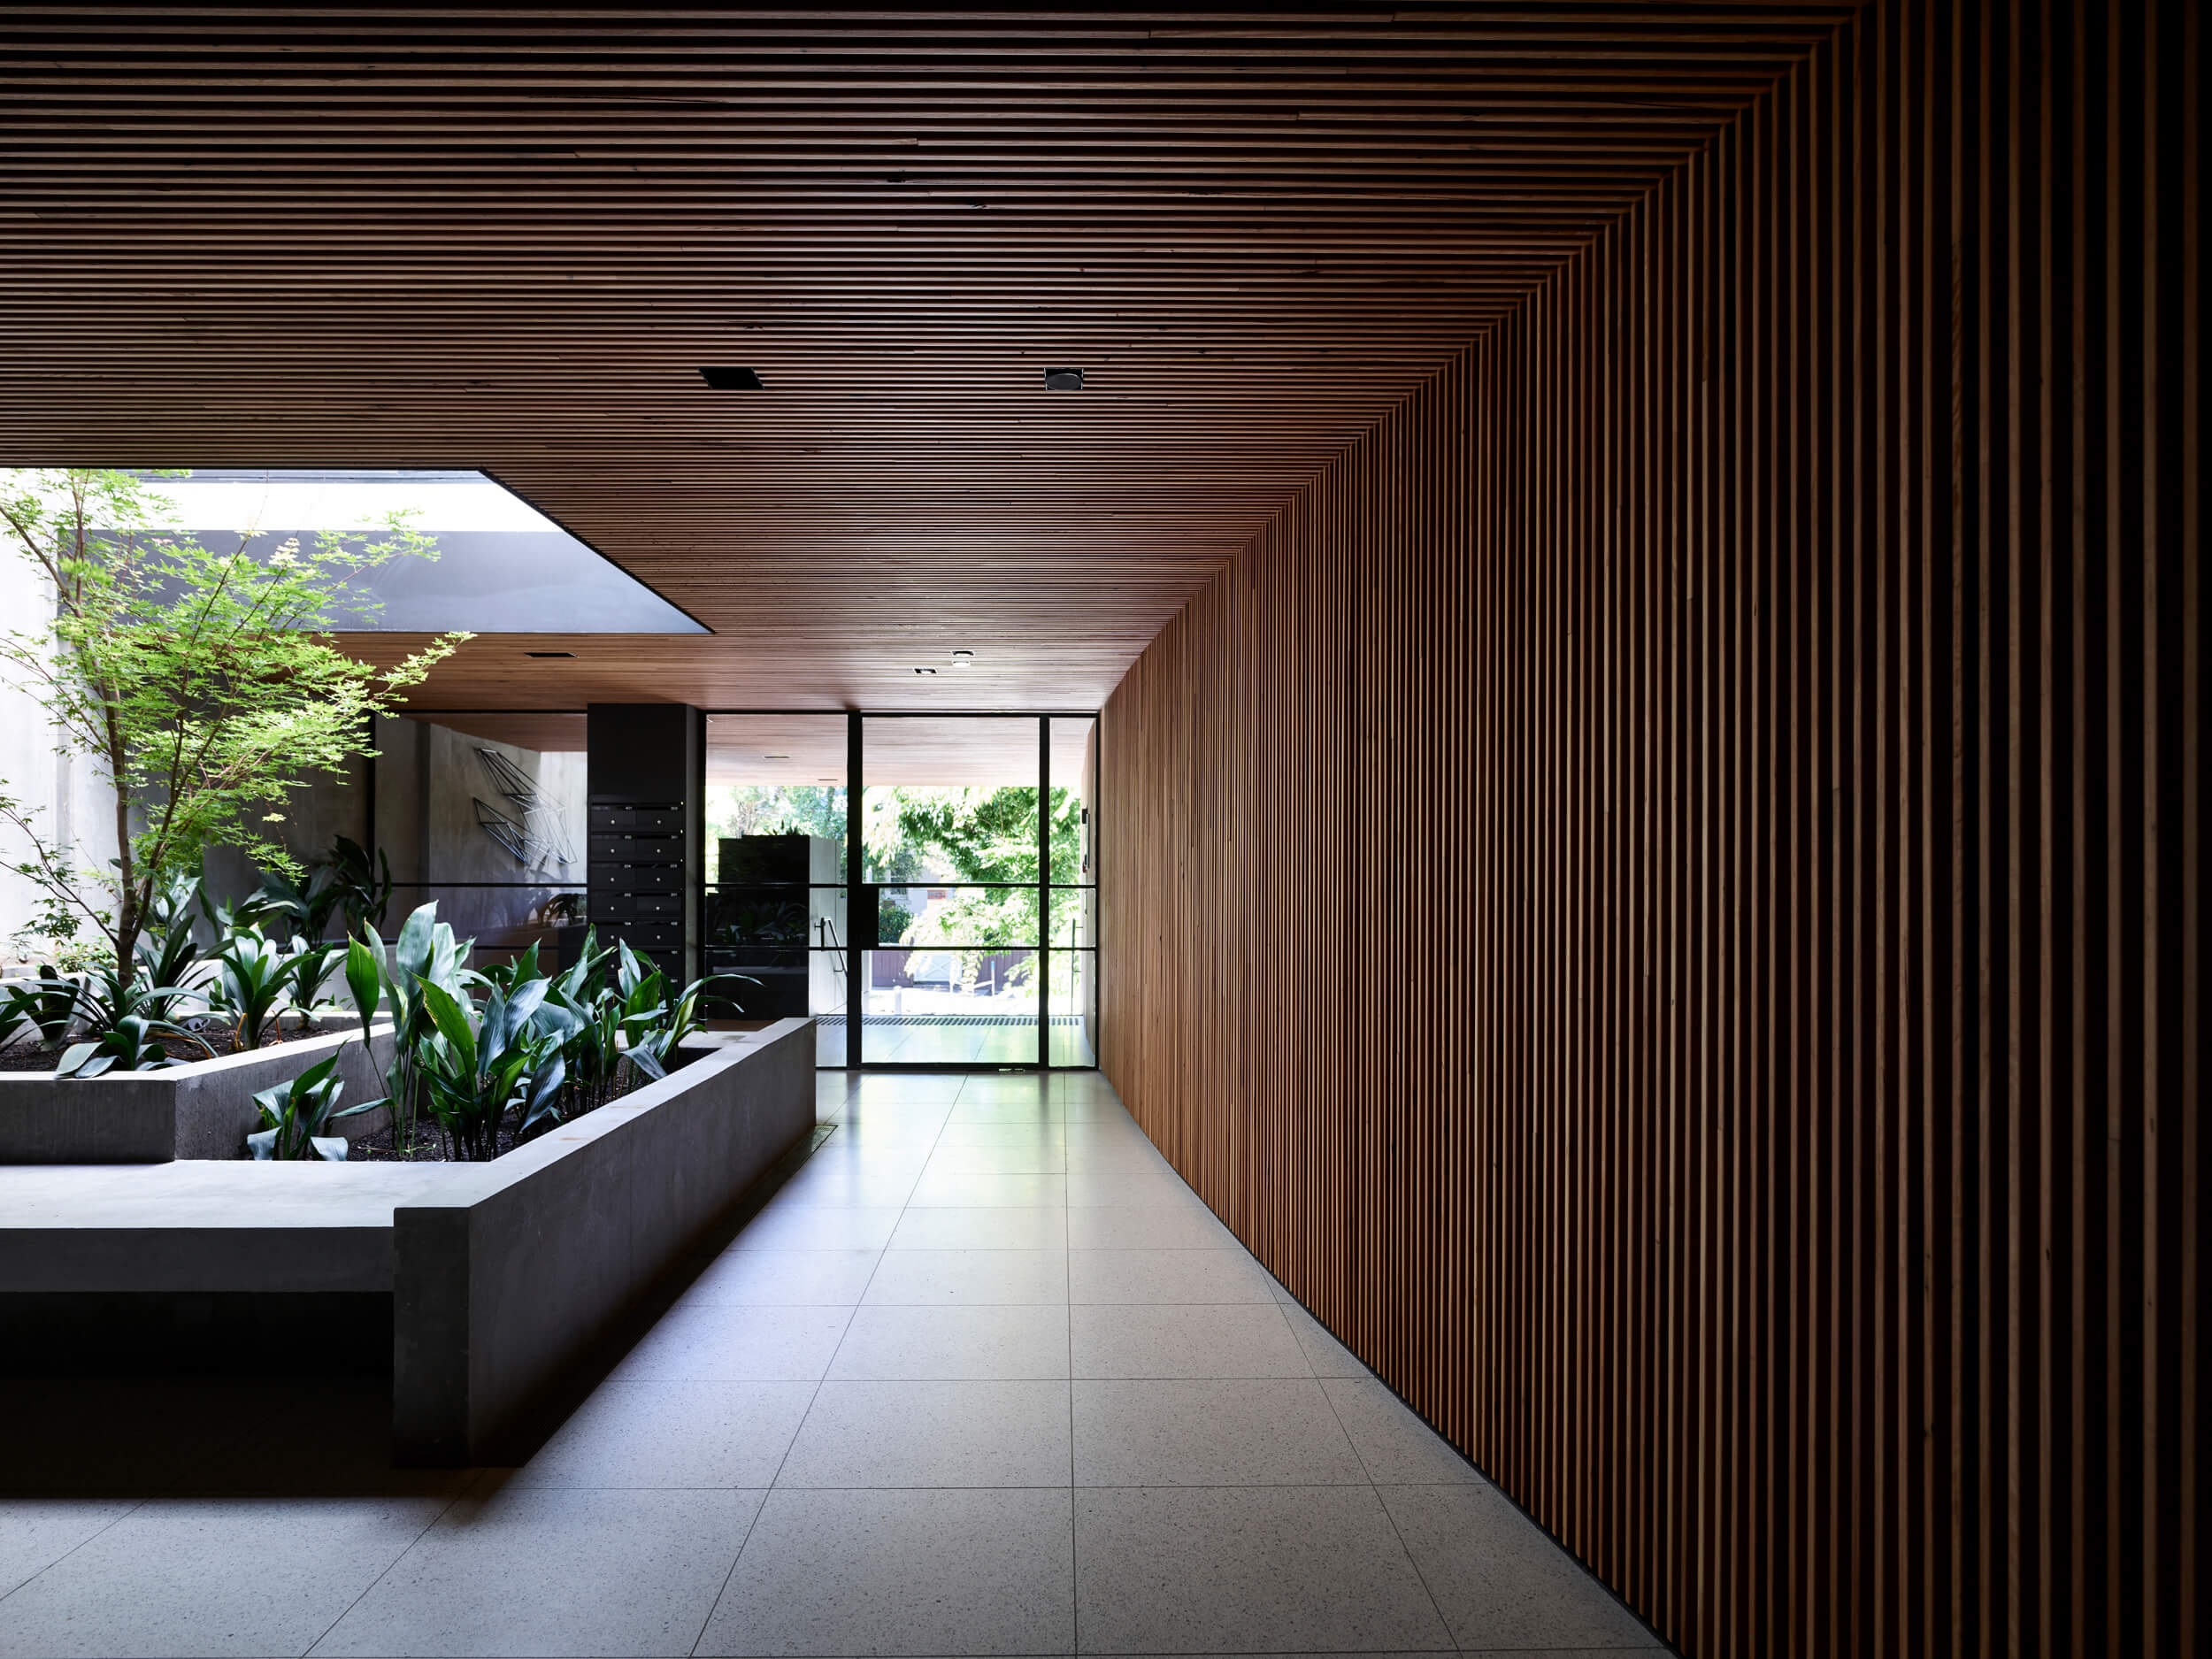 Holly Penthouse By Tom Robertson Architects Project Feature Melbourne, Australia Local Australian Design & Architectureholly R V Derek044